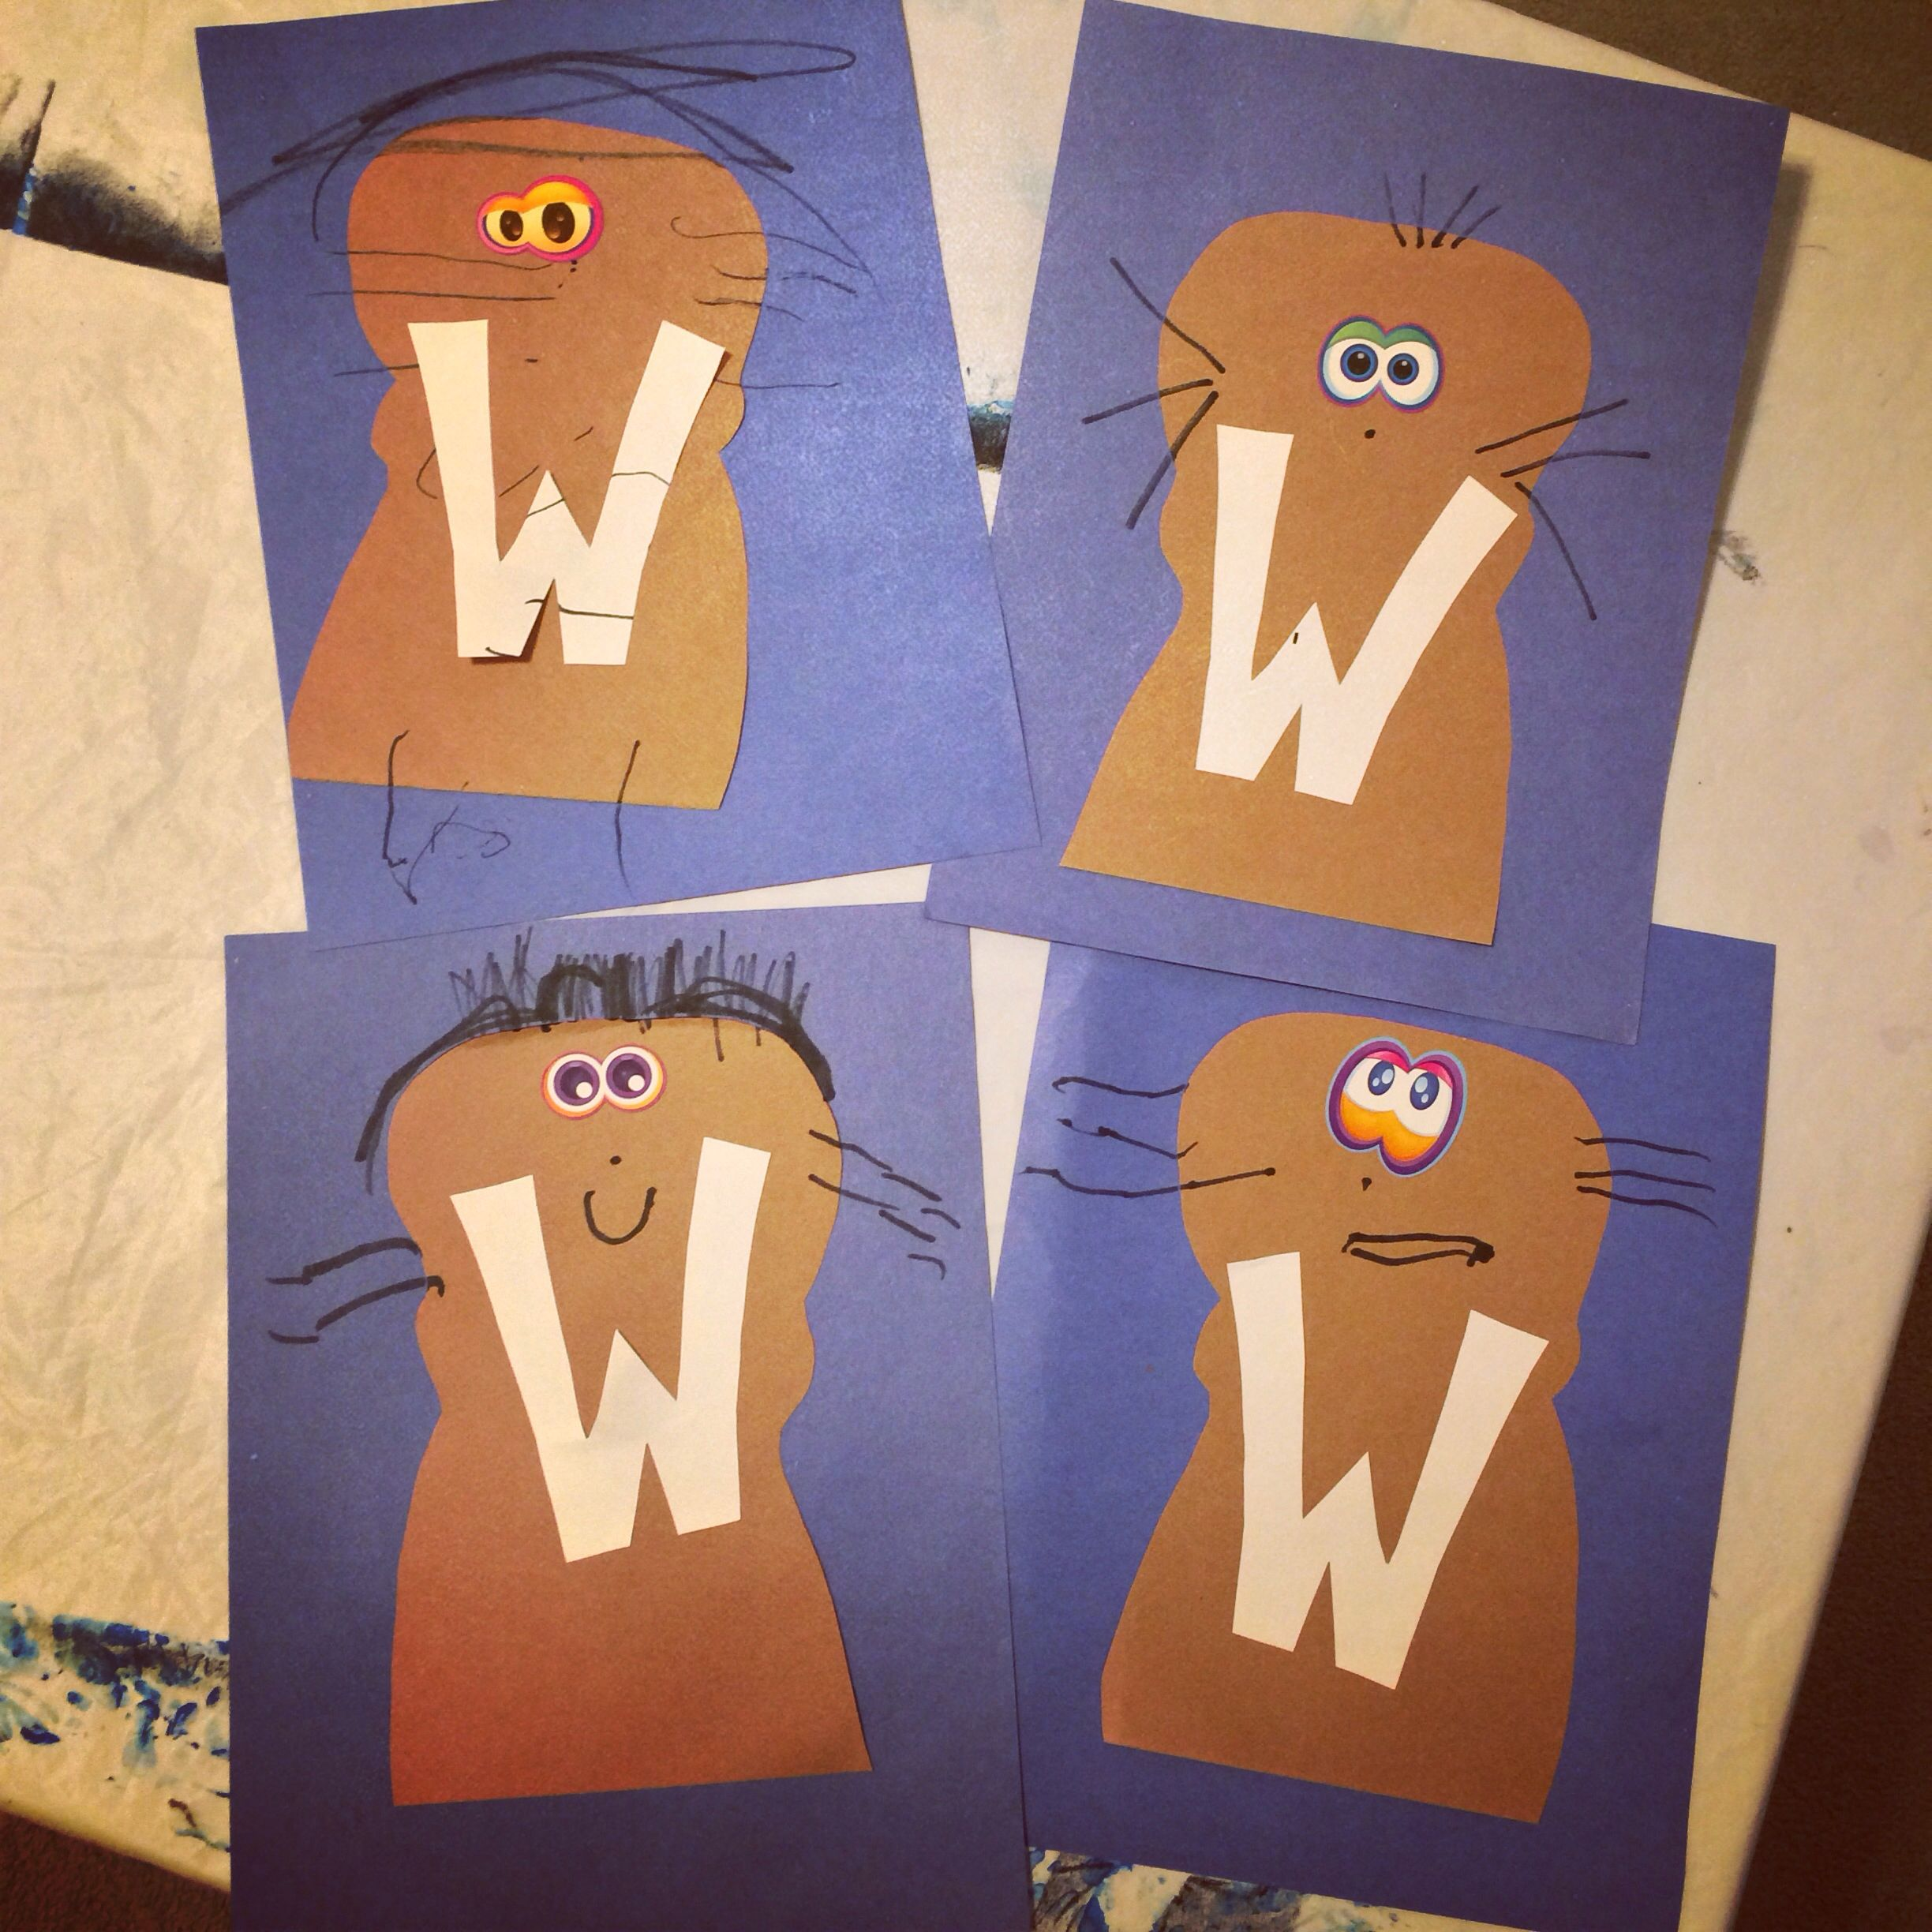 W Is For Walrus Great Letter Craft For Preschoolers And Toddlers Learning The Alphabet